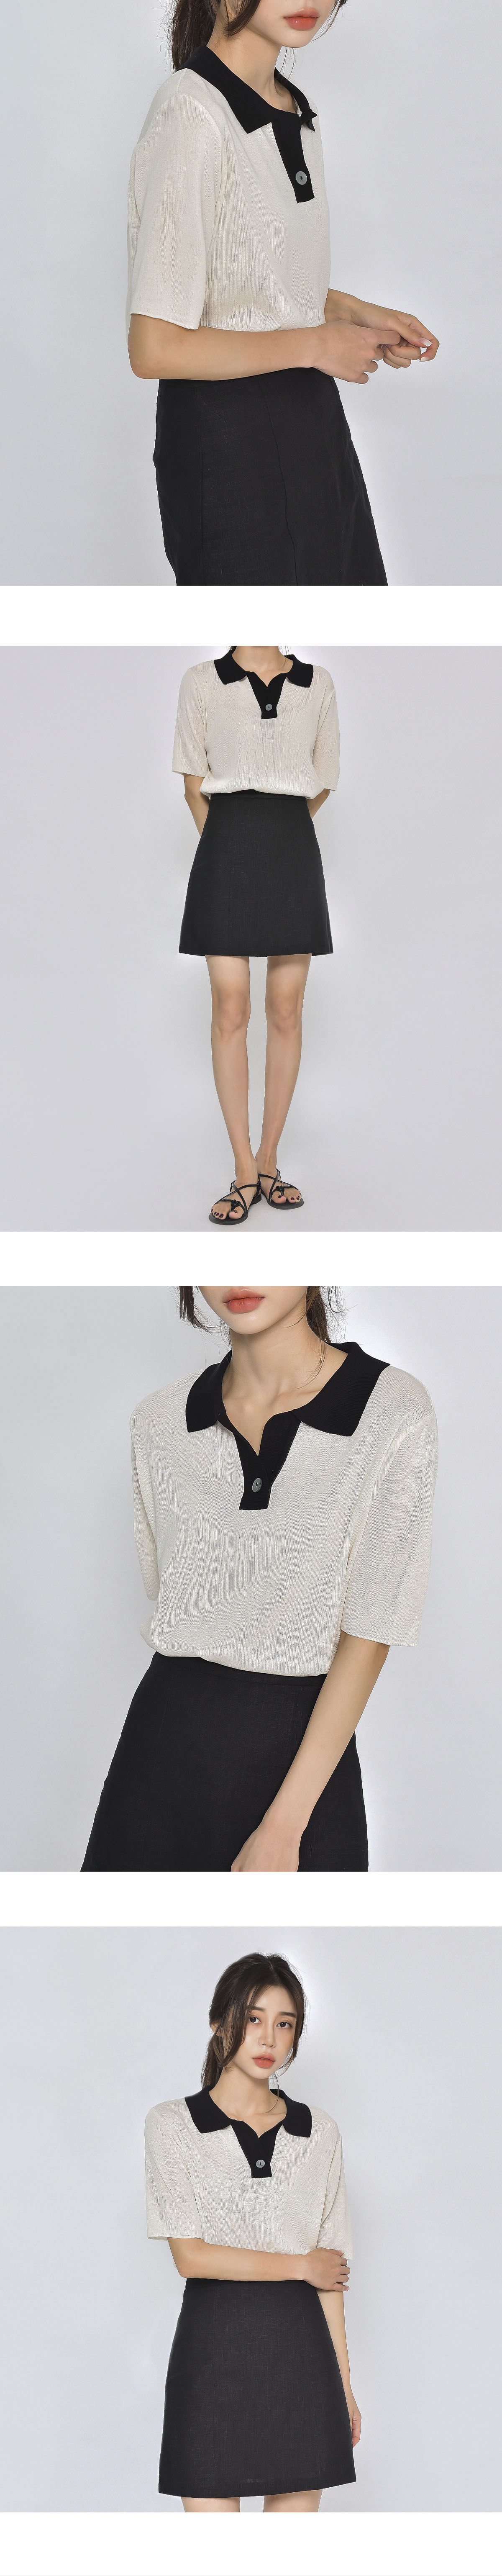 Single button collar knit